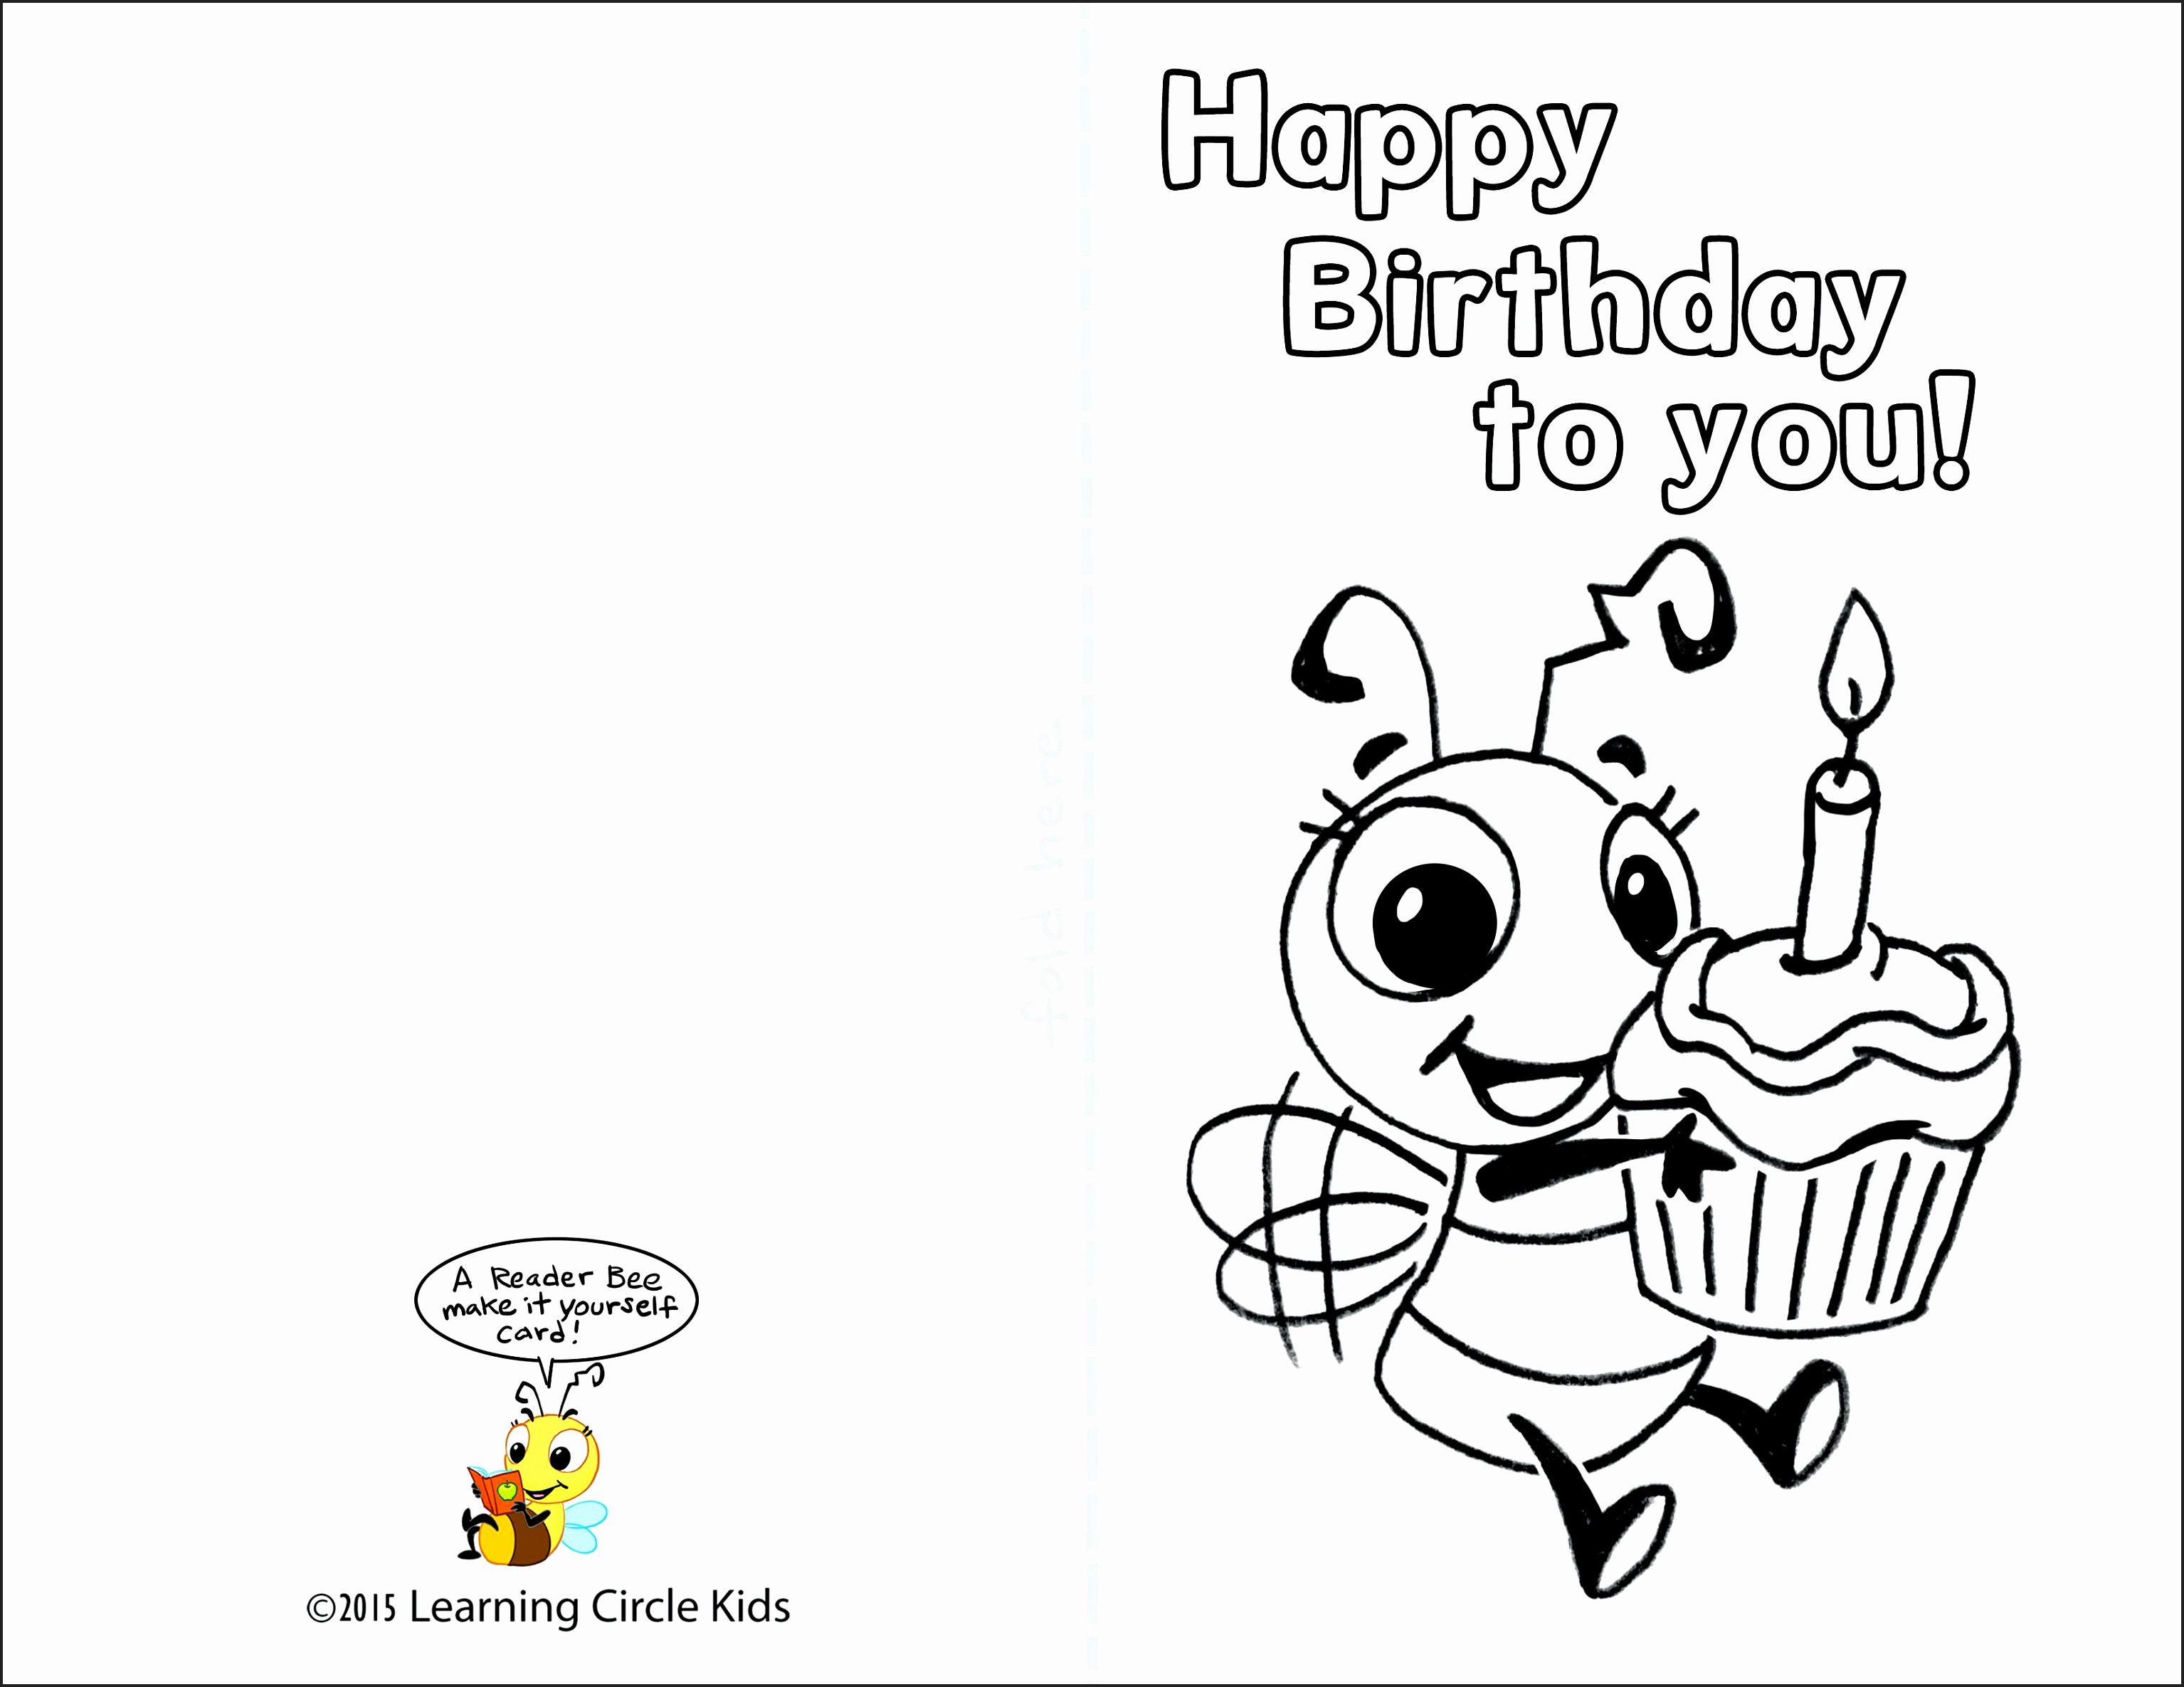 Free Printable Birthday Cards To Color - Printable Cards - Free Printable Cards To Color